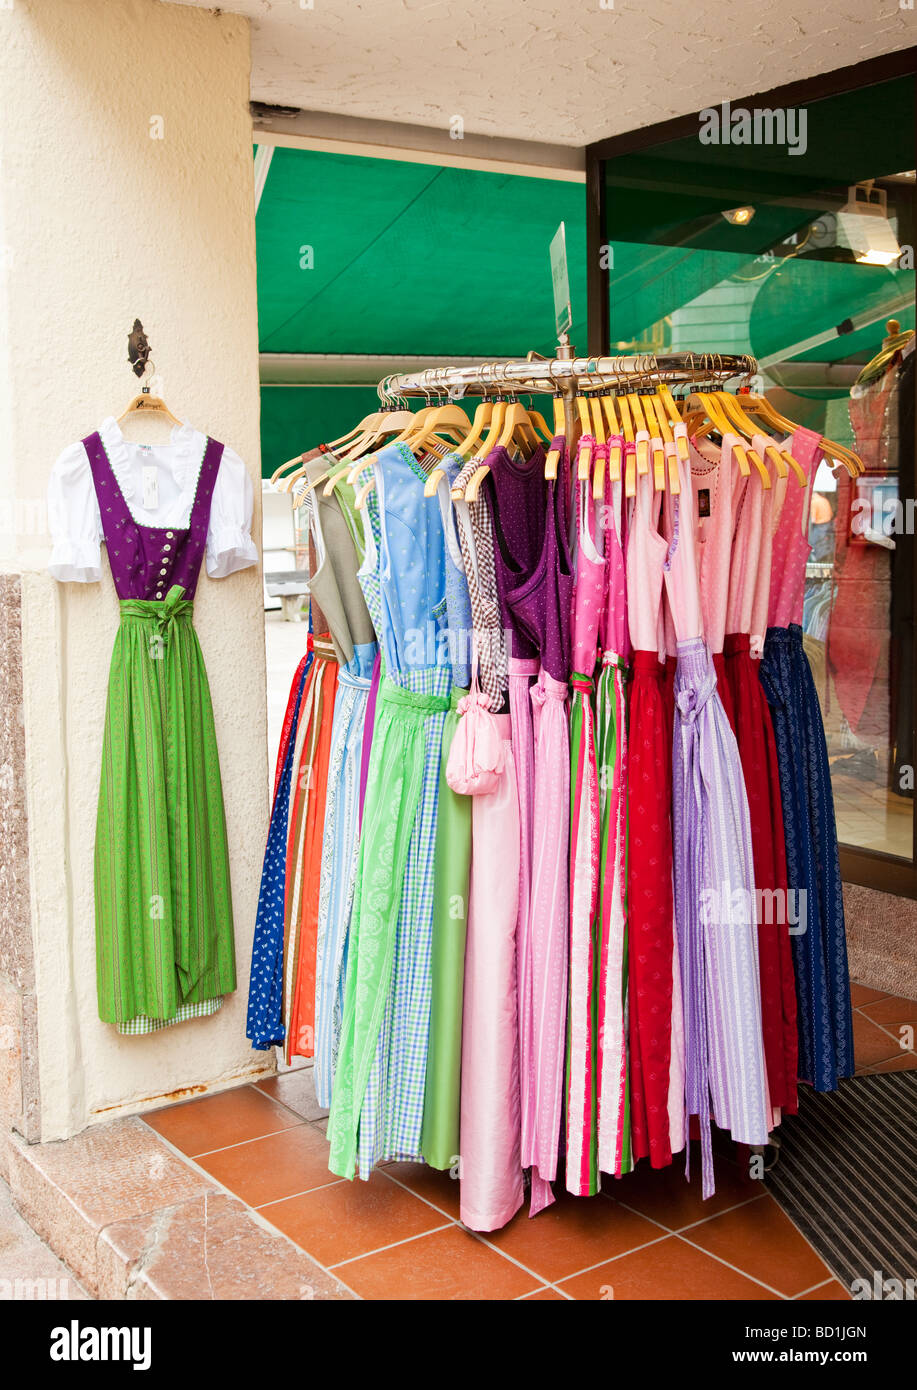 Typical Female national costume dresses on display outside a traditional dress store Bavaria, Germany Europe - Stock Image